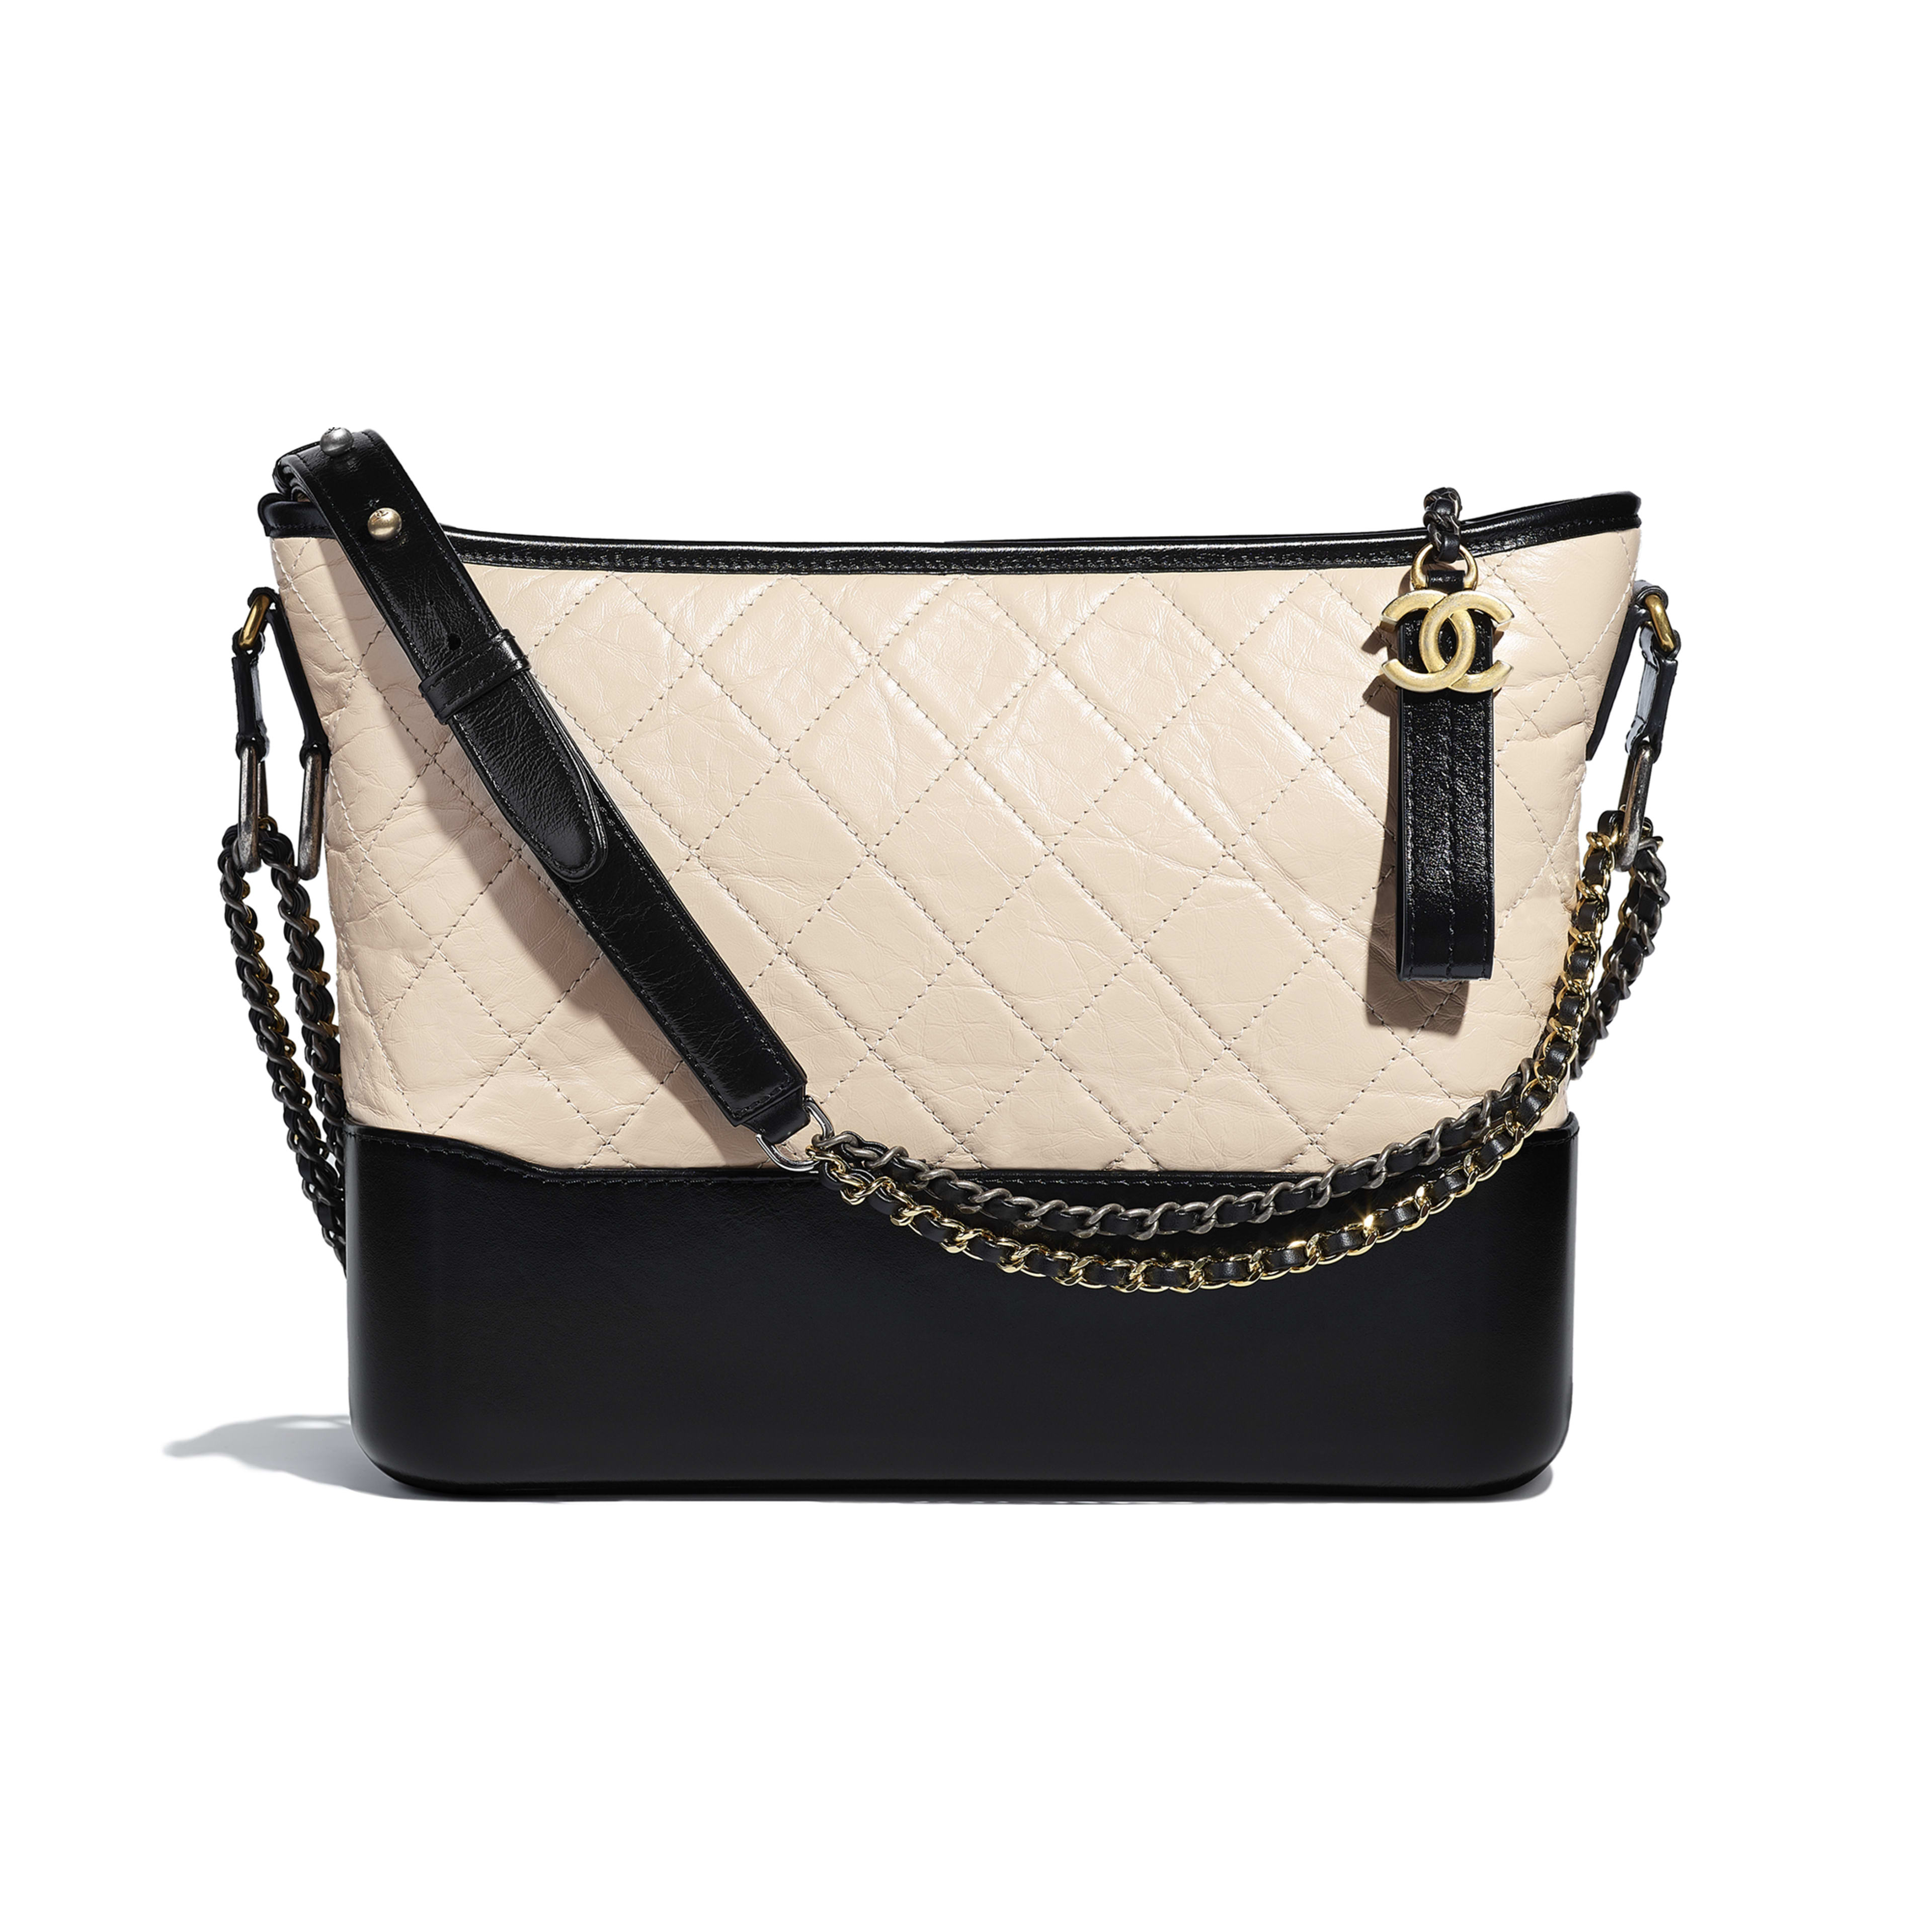 CHANEL'S GABRIELLE Large Hobo Bag - Beige & Black - Aged Calfskin, Smooth Calfskin, Silver-Tone & Gold-Tone Metal - Default view - see full sized version